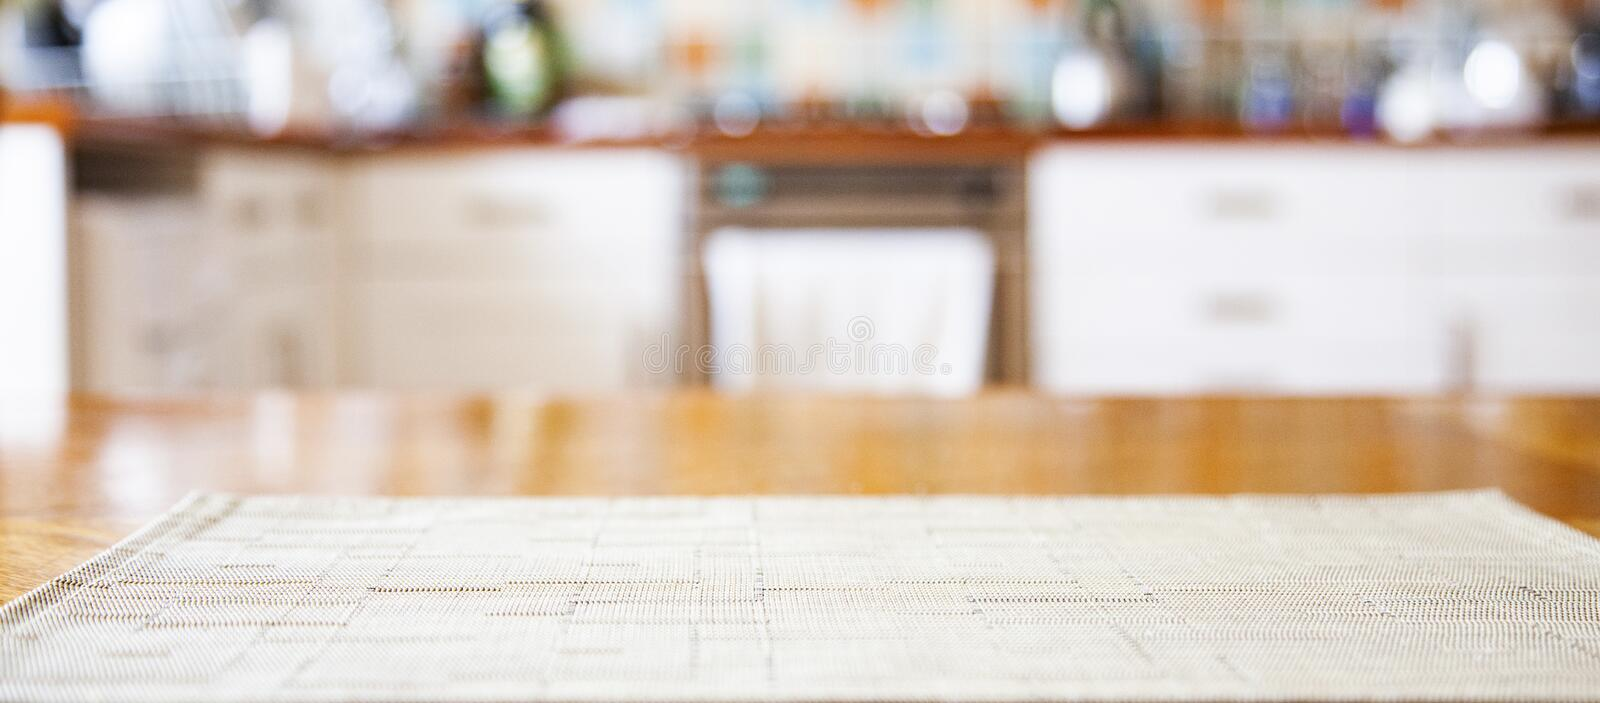 blurred kitchen interior with napkin on table stock photos